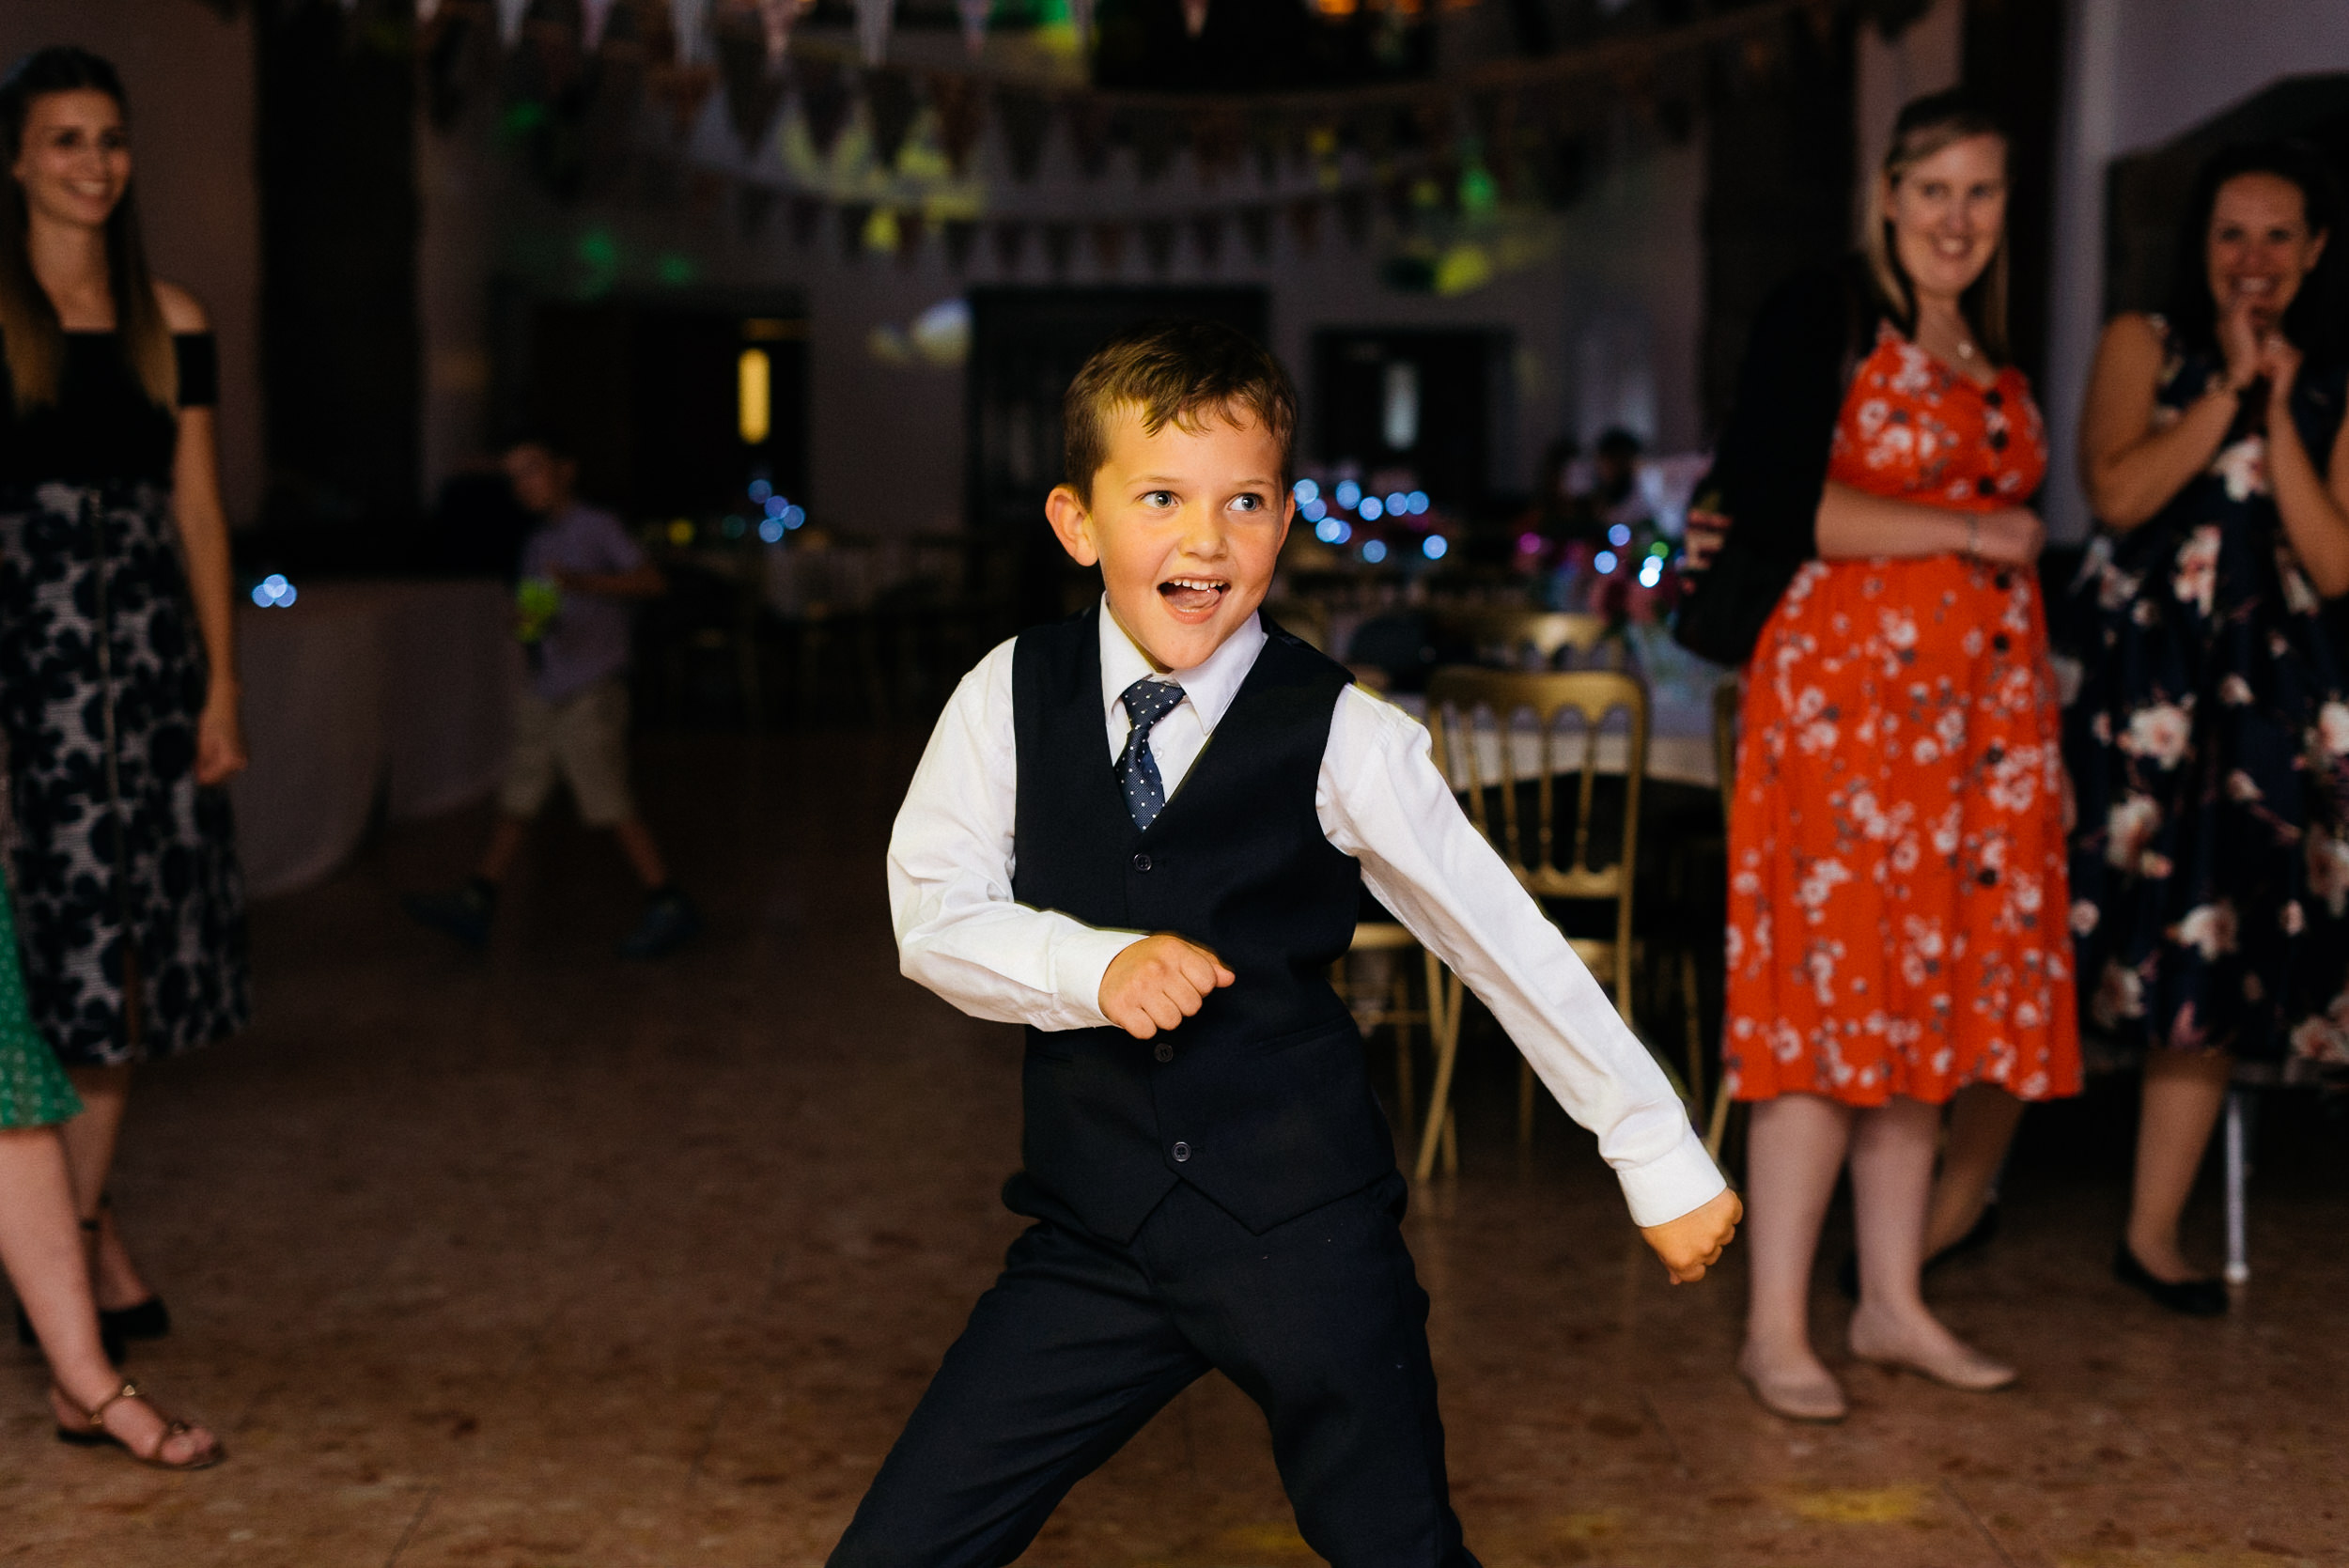 boy dancing at the wedding